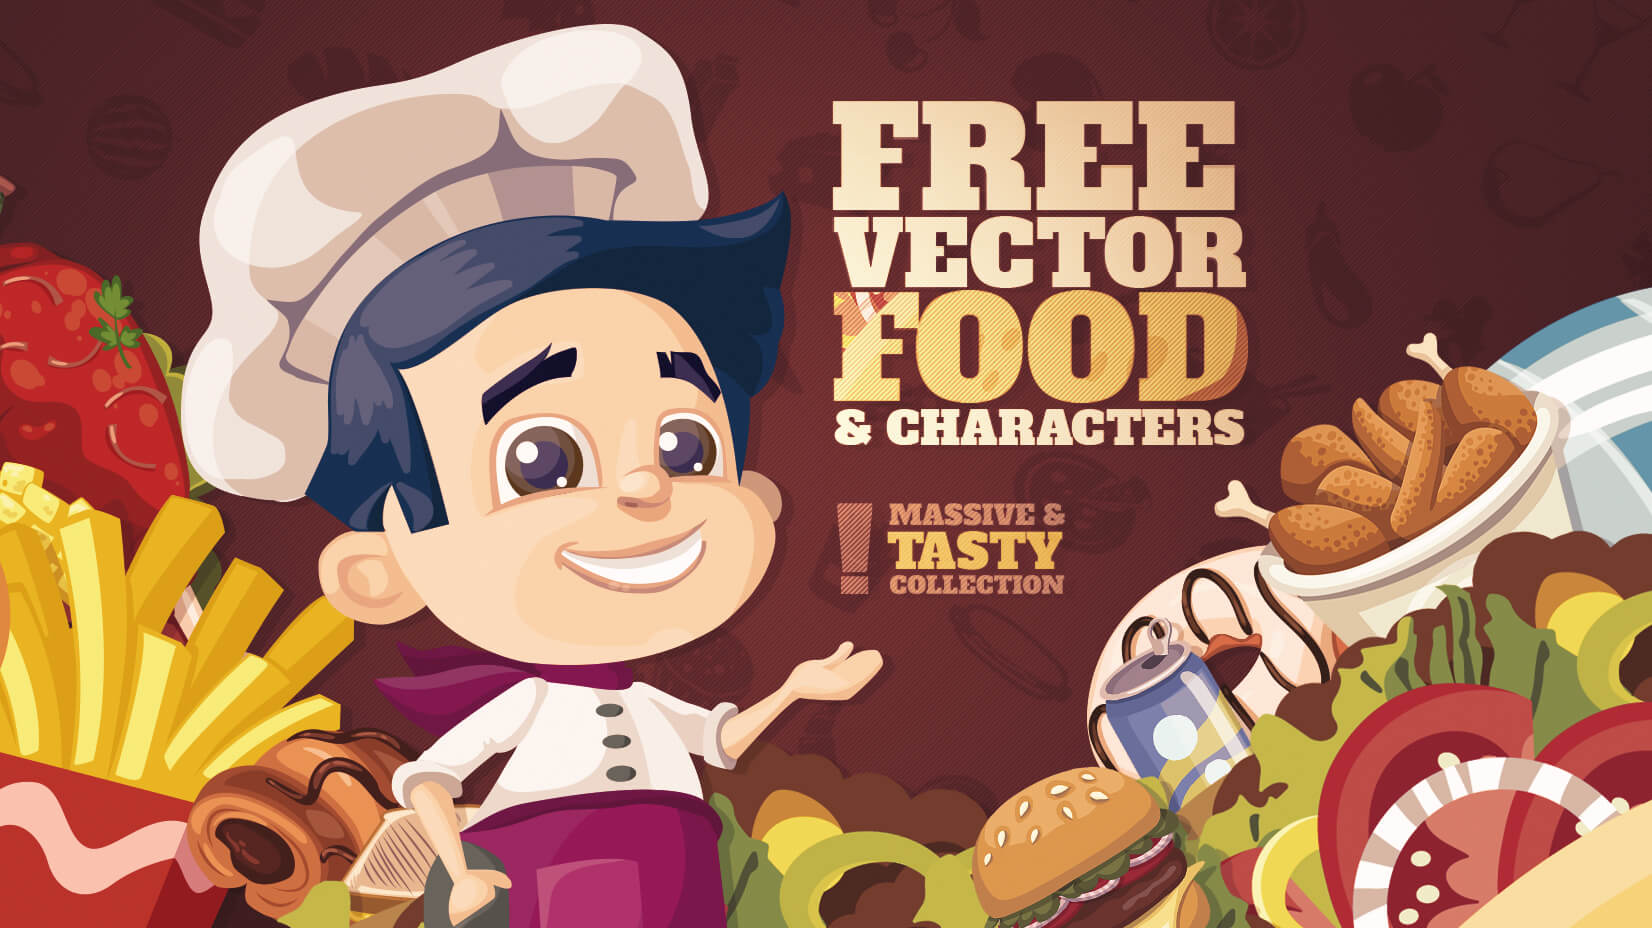 Fhem Icon Küche 100 Free Food Vector Graphics And Characters For Tasty Projects